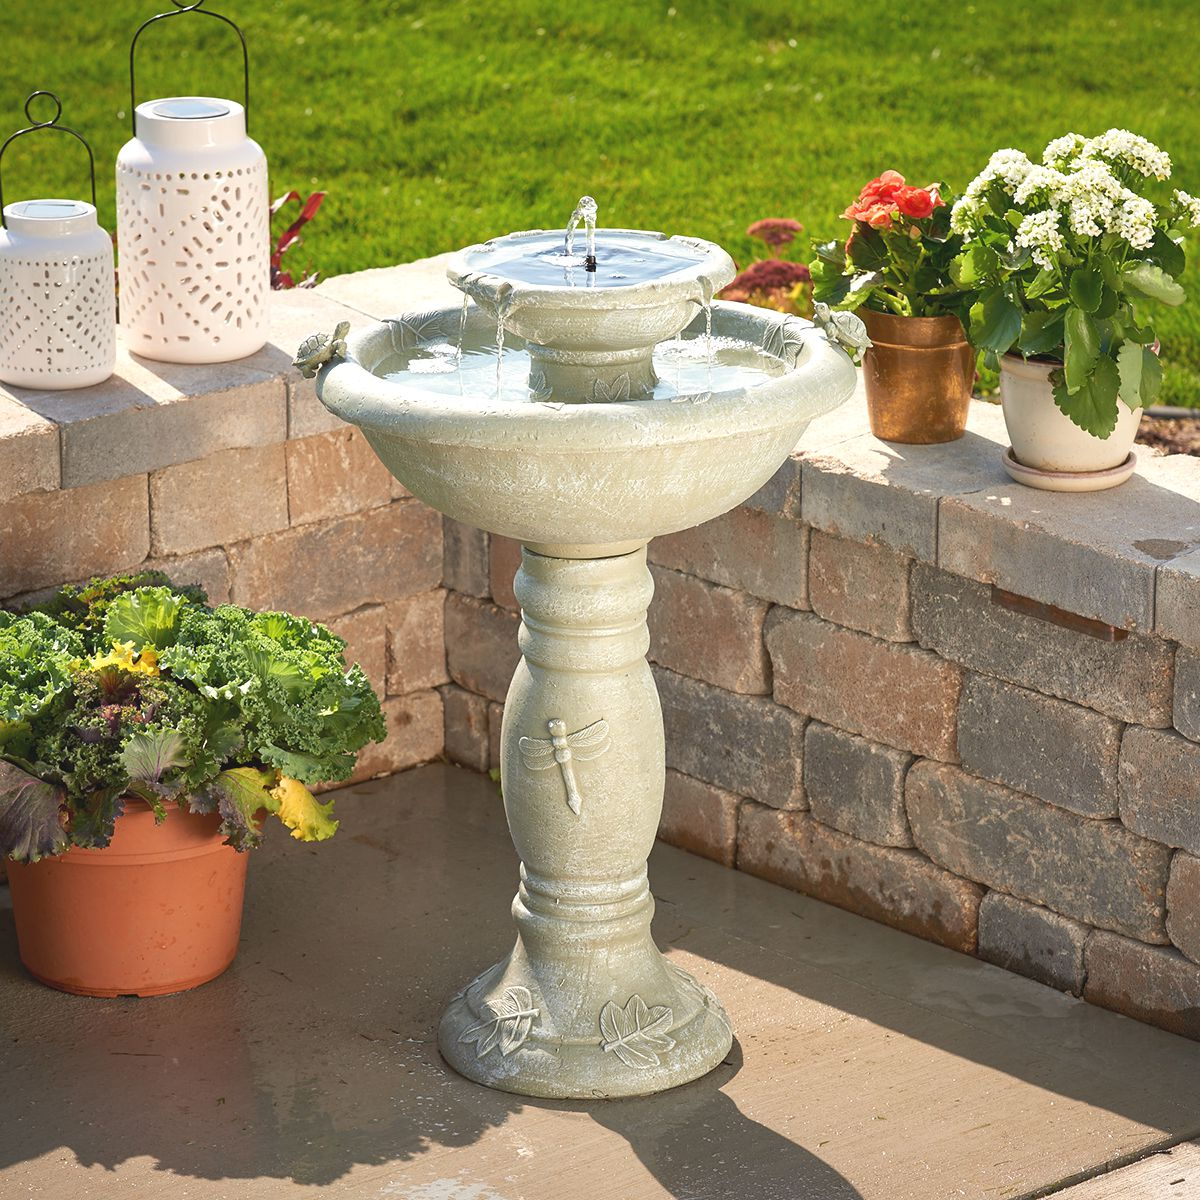 solar fountains hayneedle - HD 1200×1200